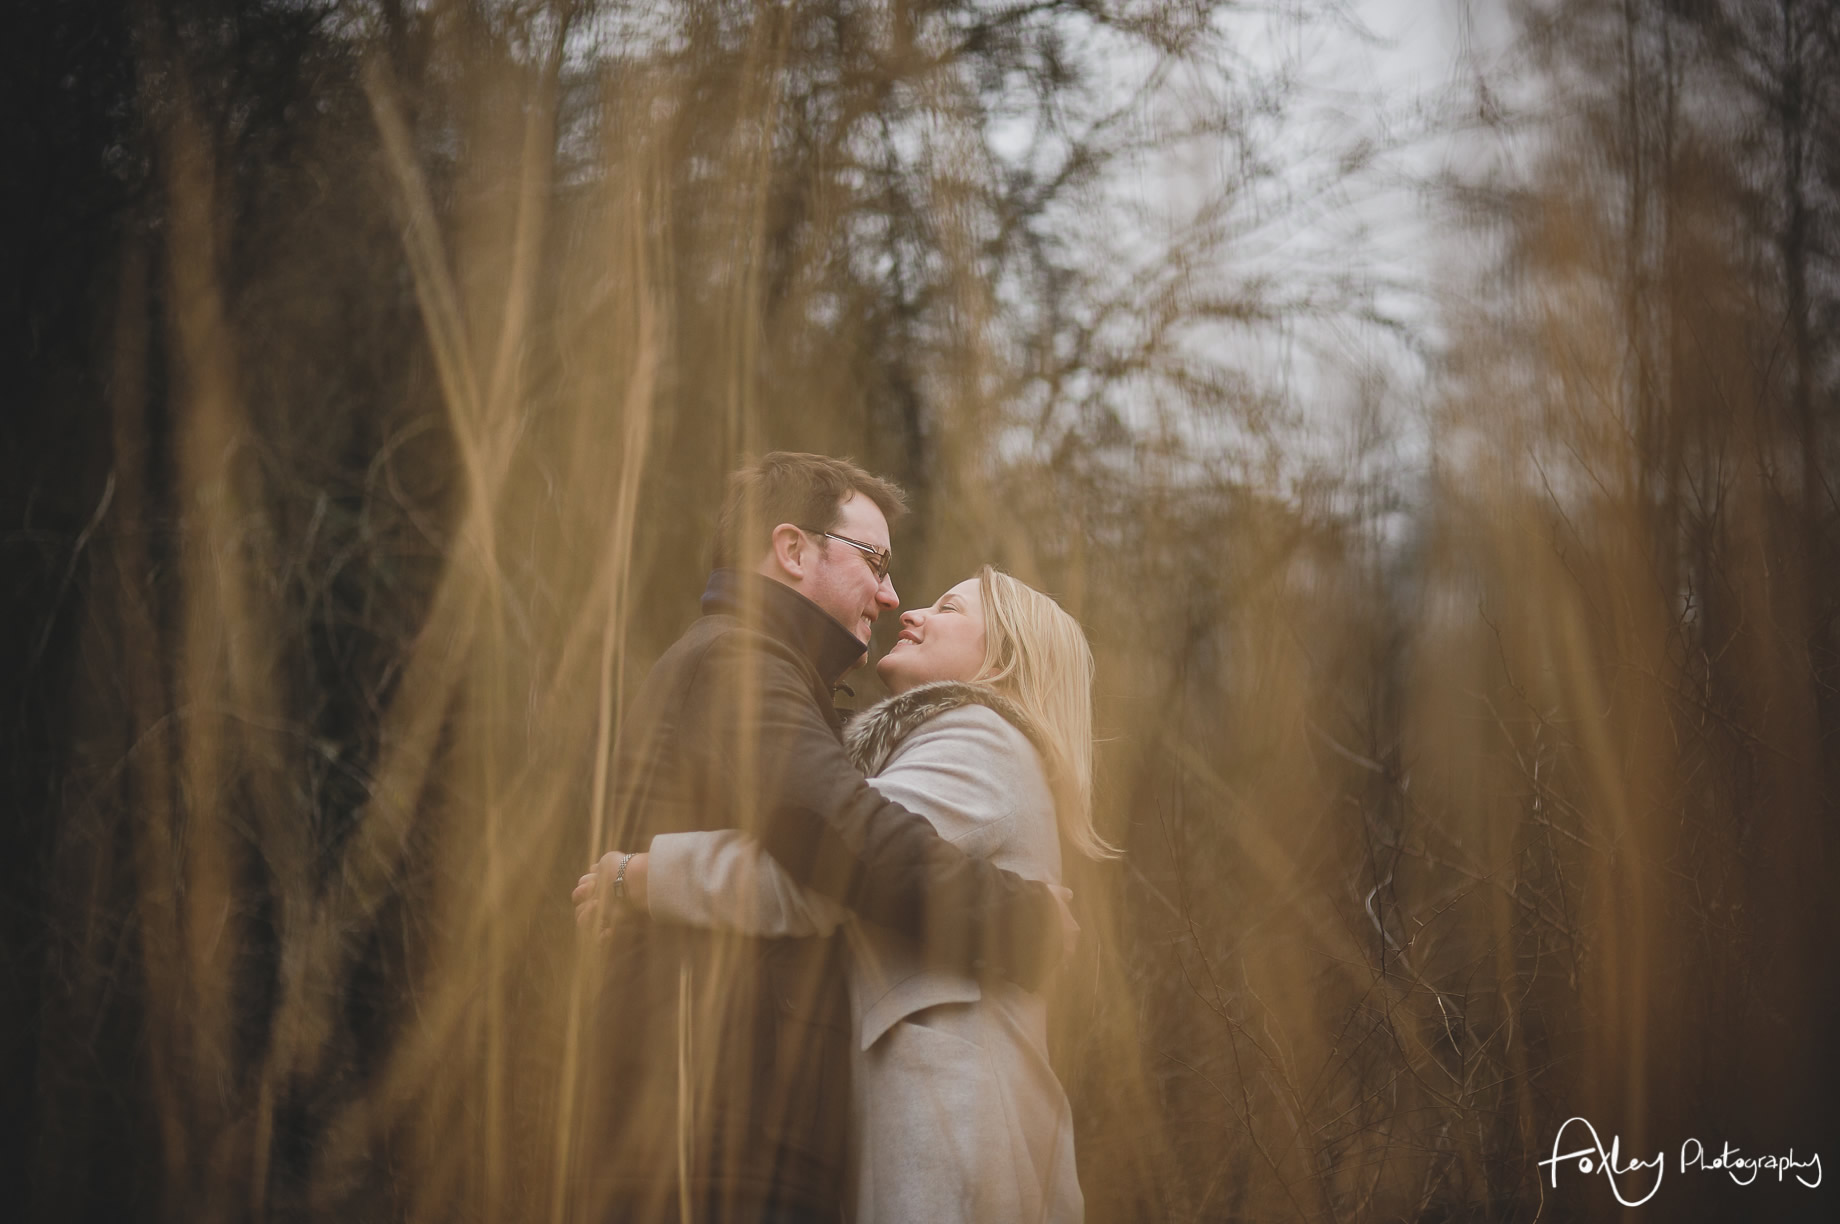 Rebecca and Paul's Pre-Wedding Shoot at Wycoller Country Park 017